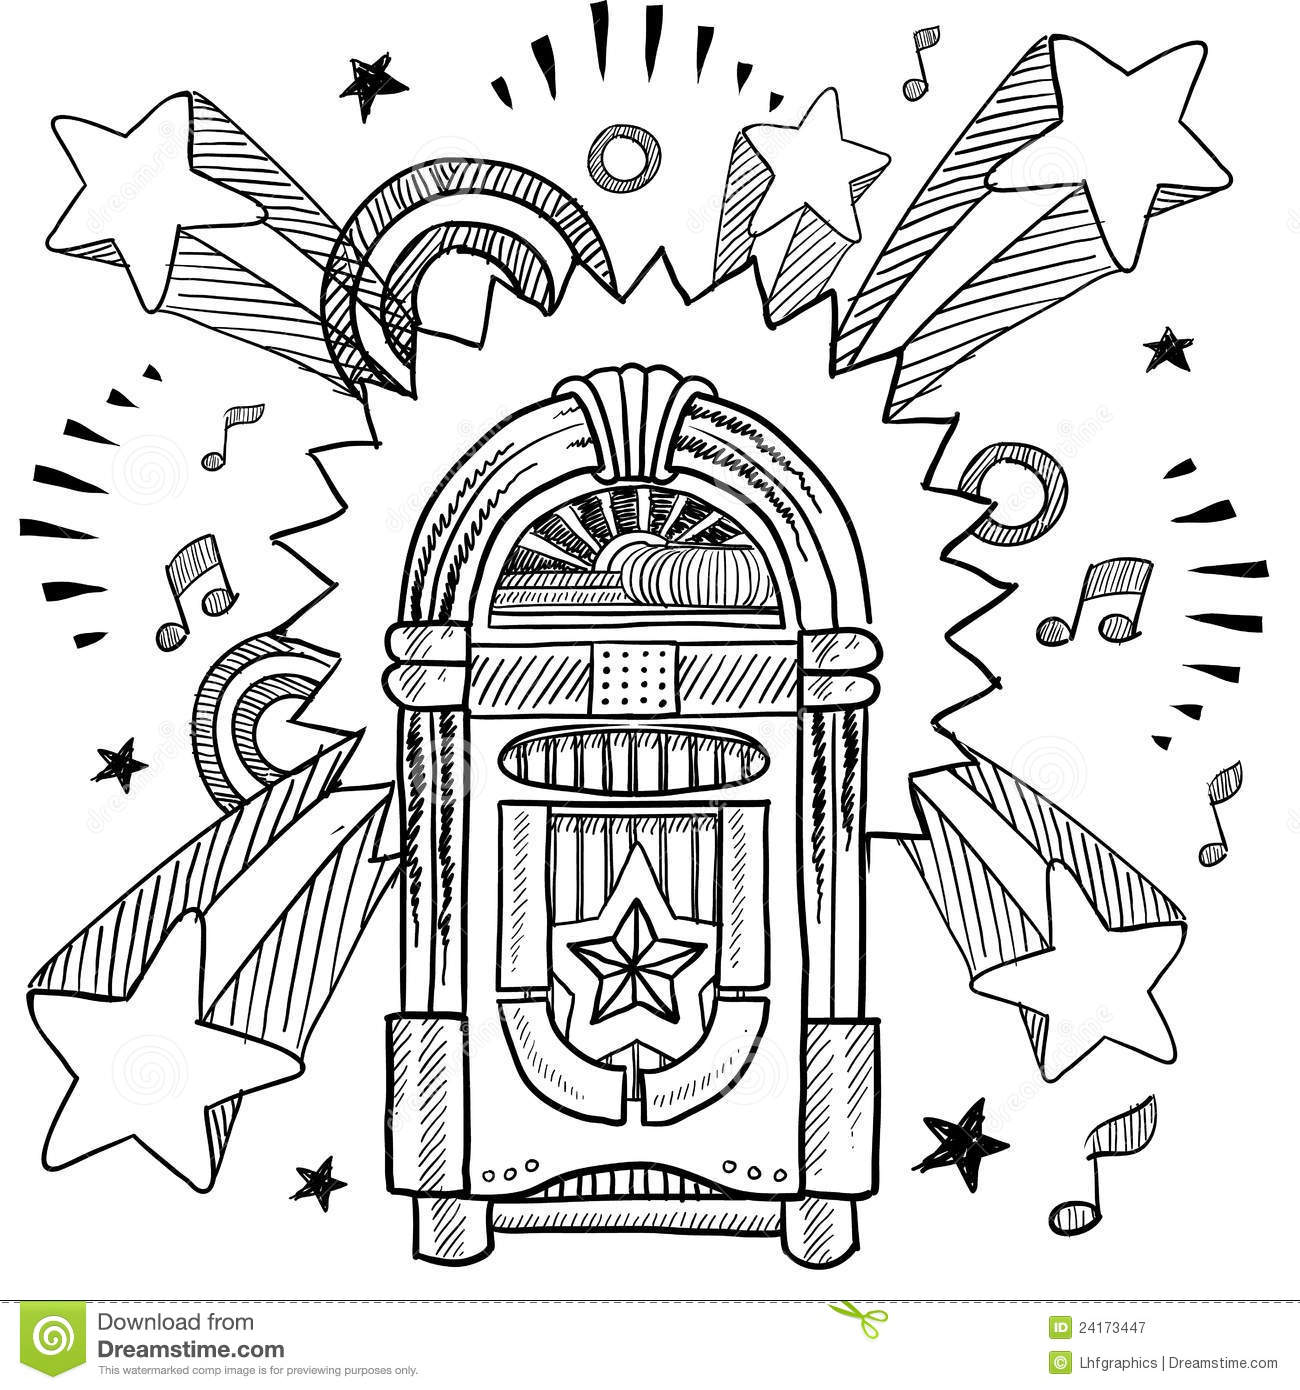 Retro Jukebox And Vinyl Lp Sketch Royalty Free Stock